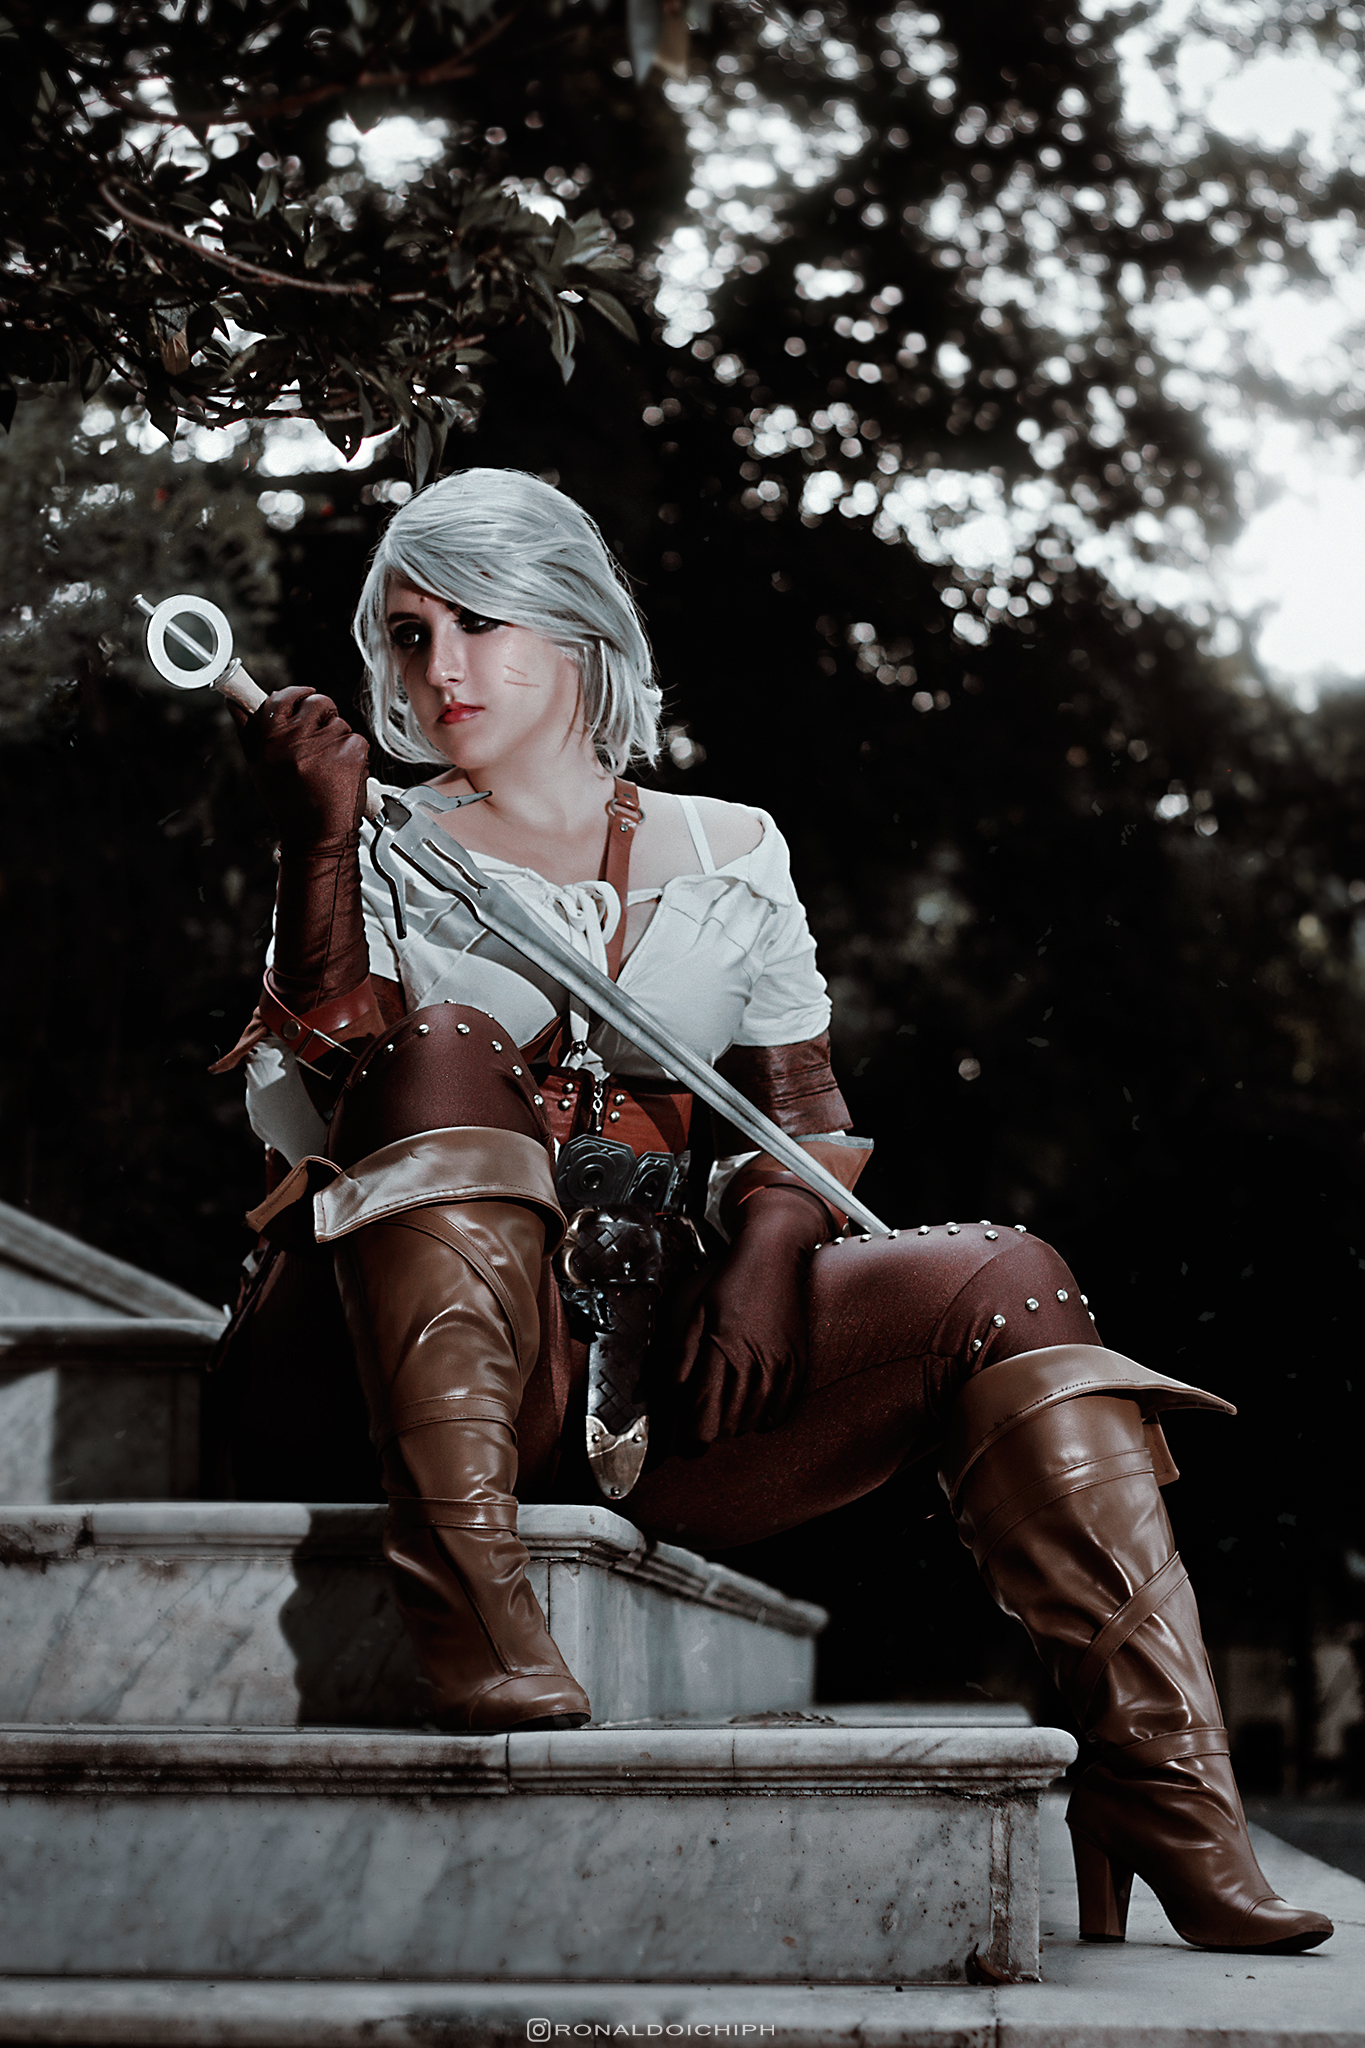 Ciri cosplay from CD Projekt's The Witcher 3: Wild Hunt - Cosplay photography by Ronaldo Ichi